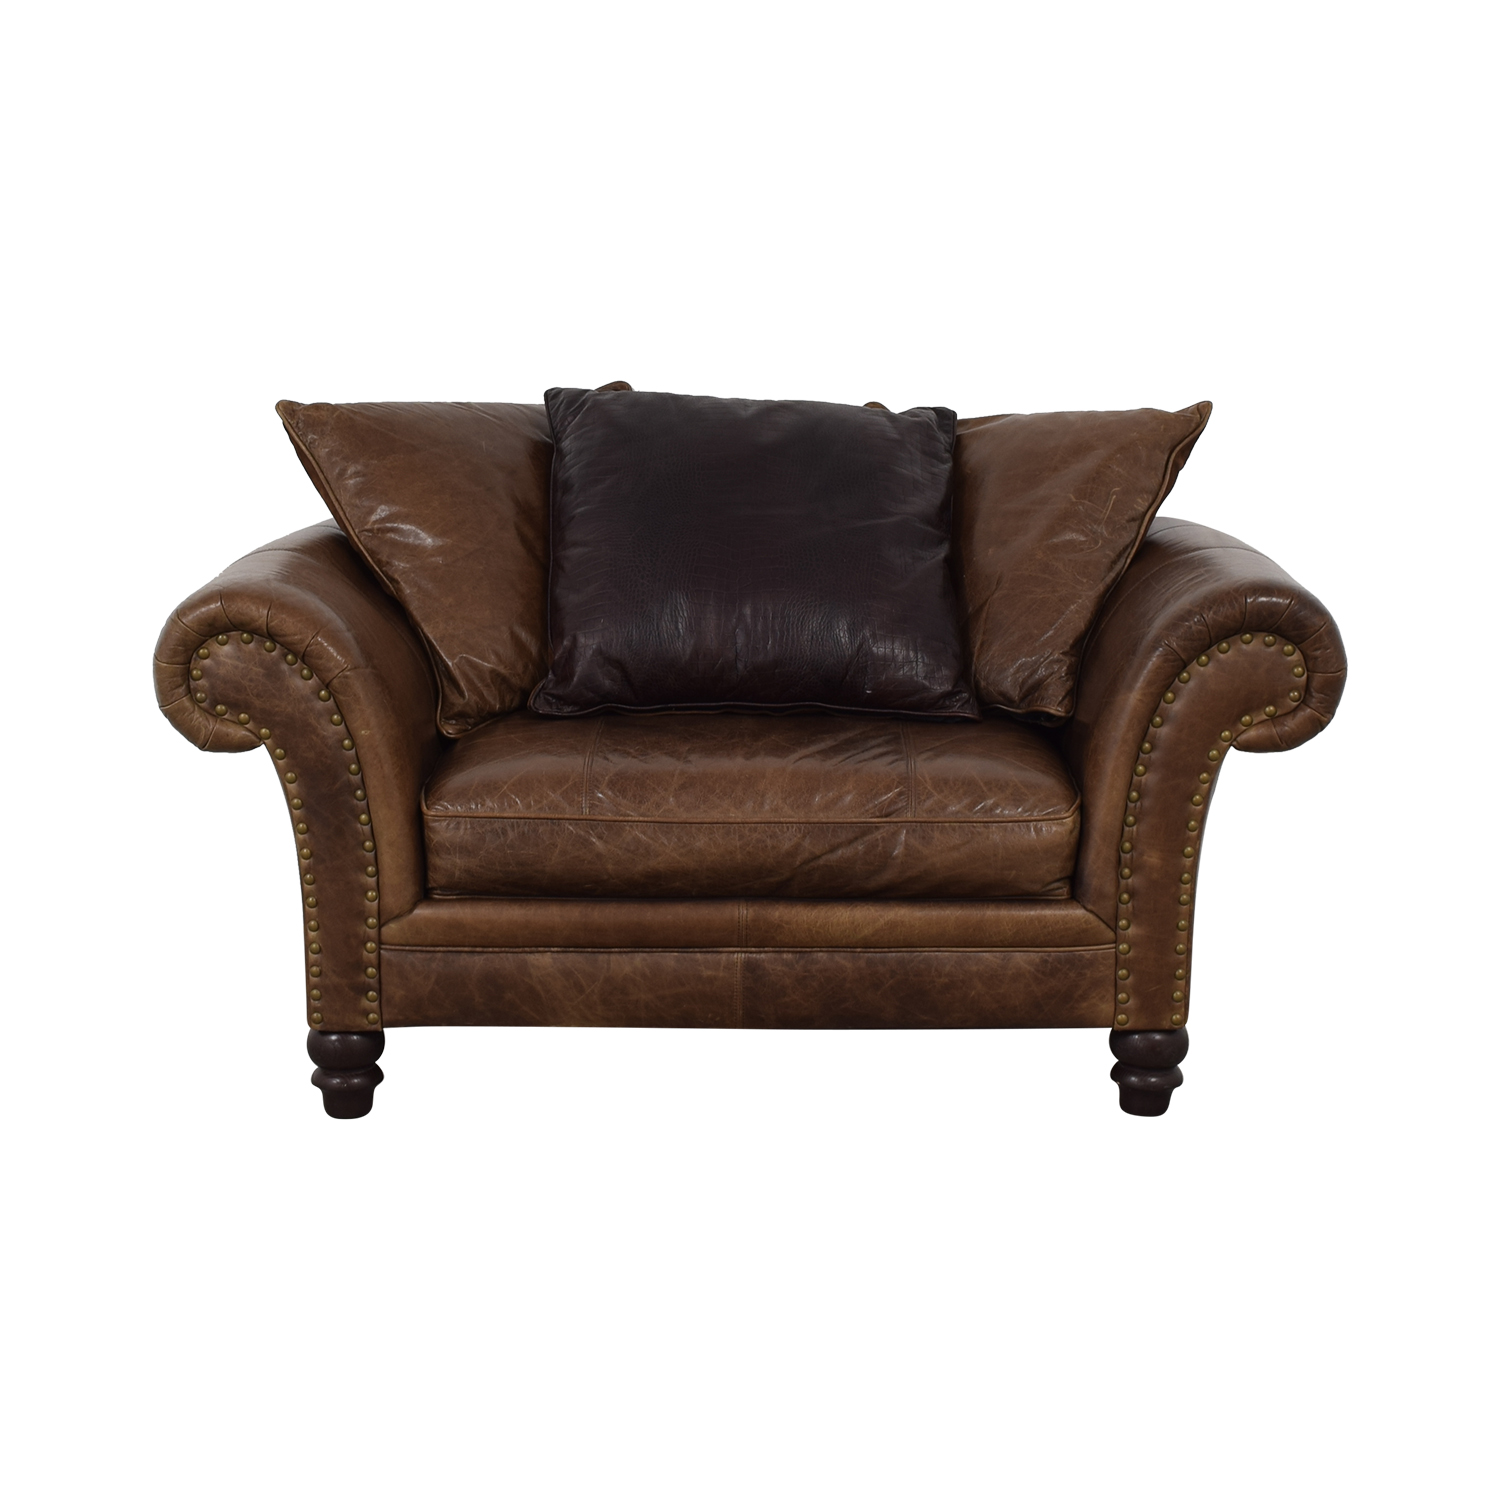 Bernhardt Brown Oversized Accent Chair / Accent Chairs